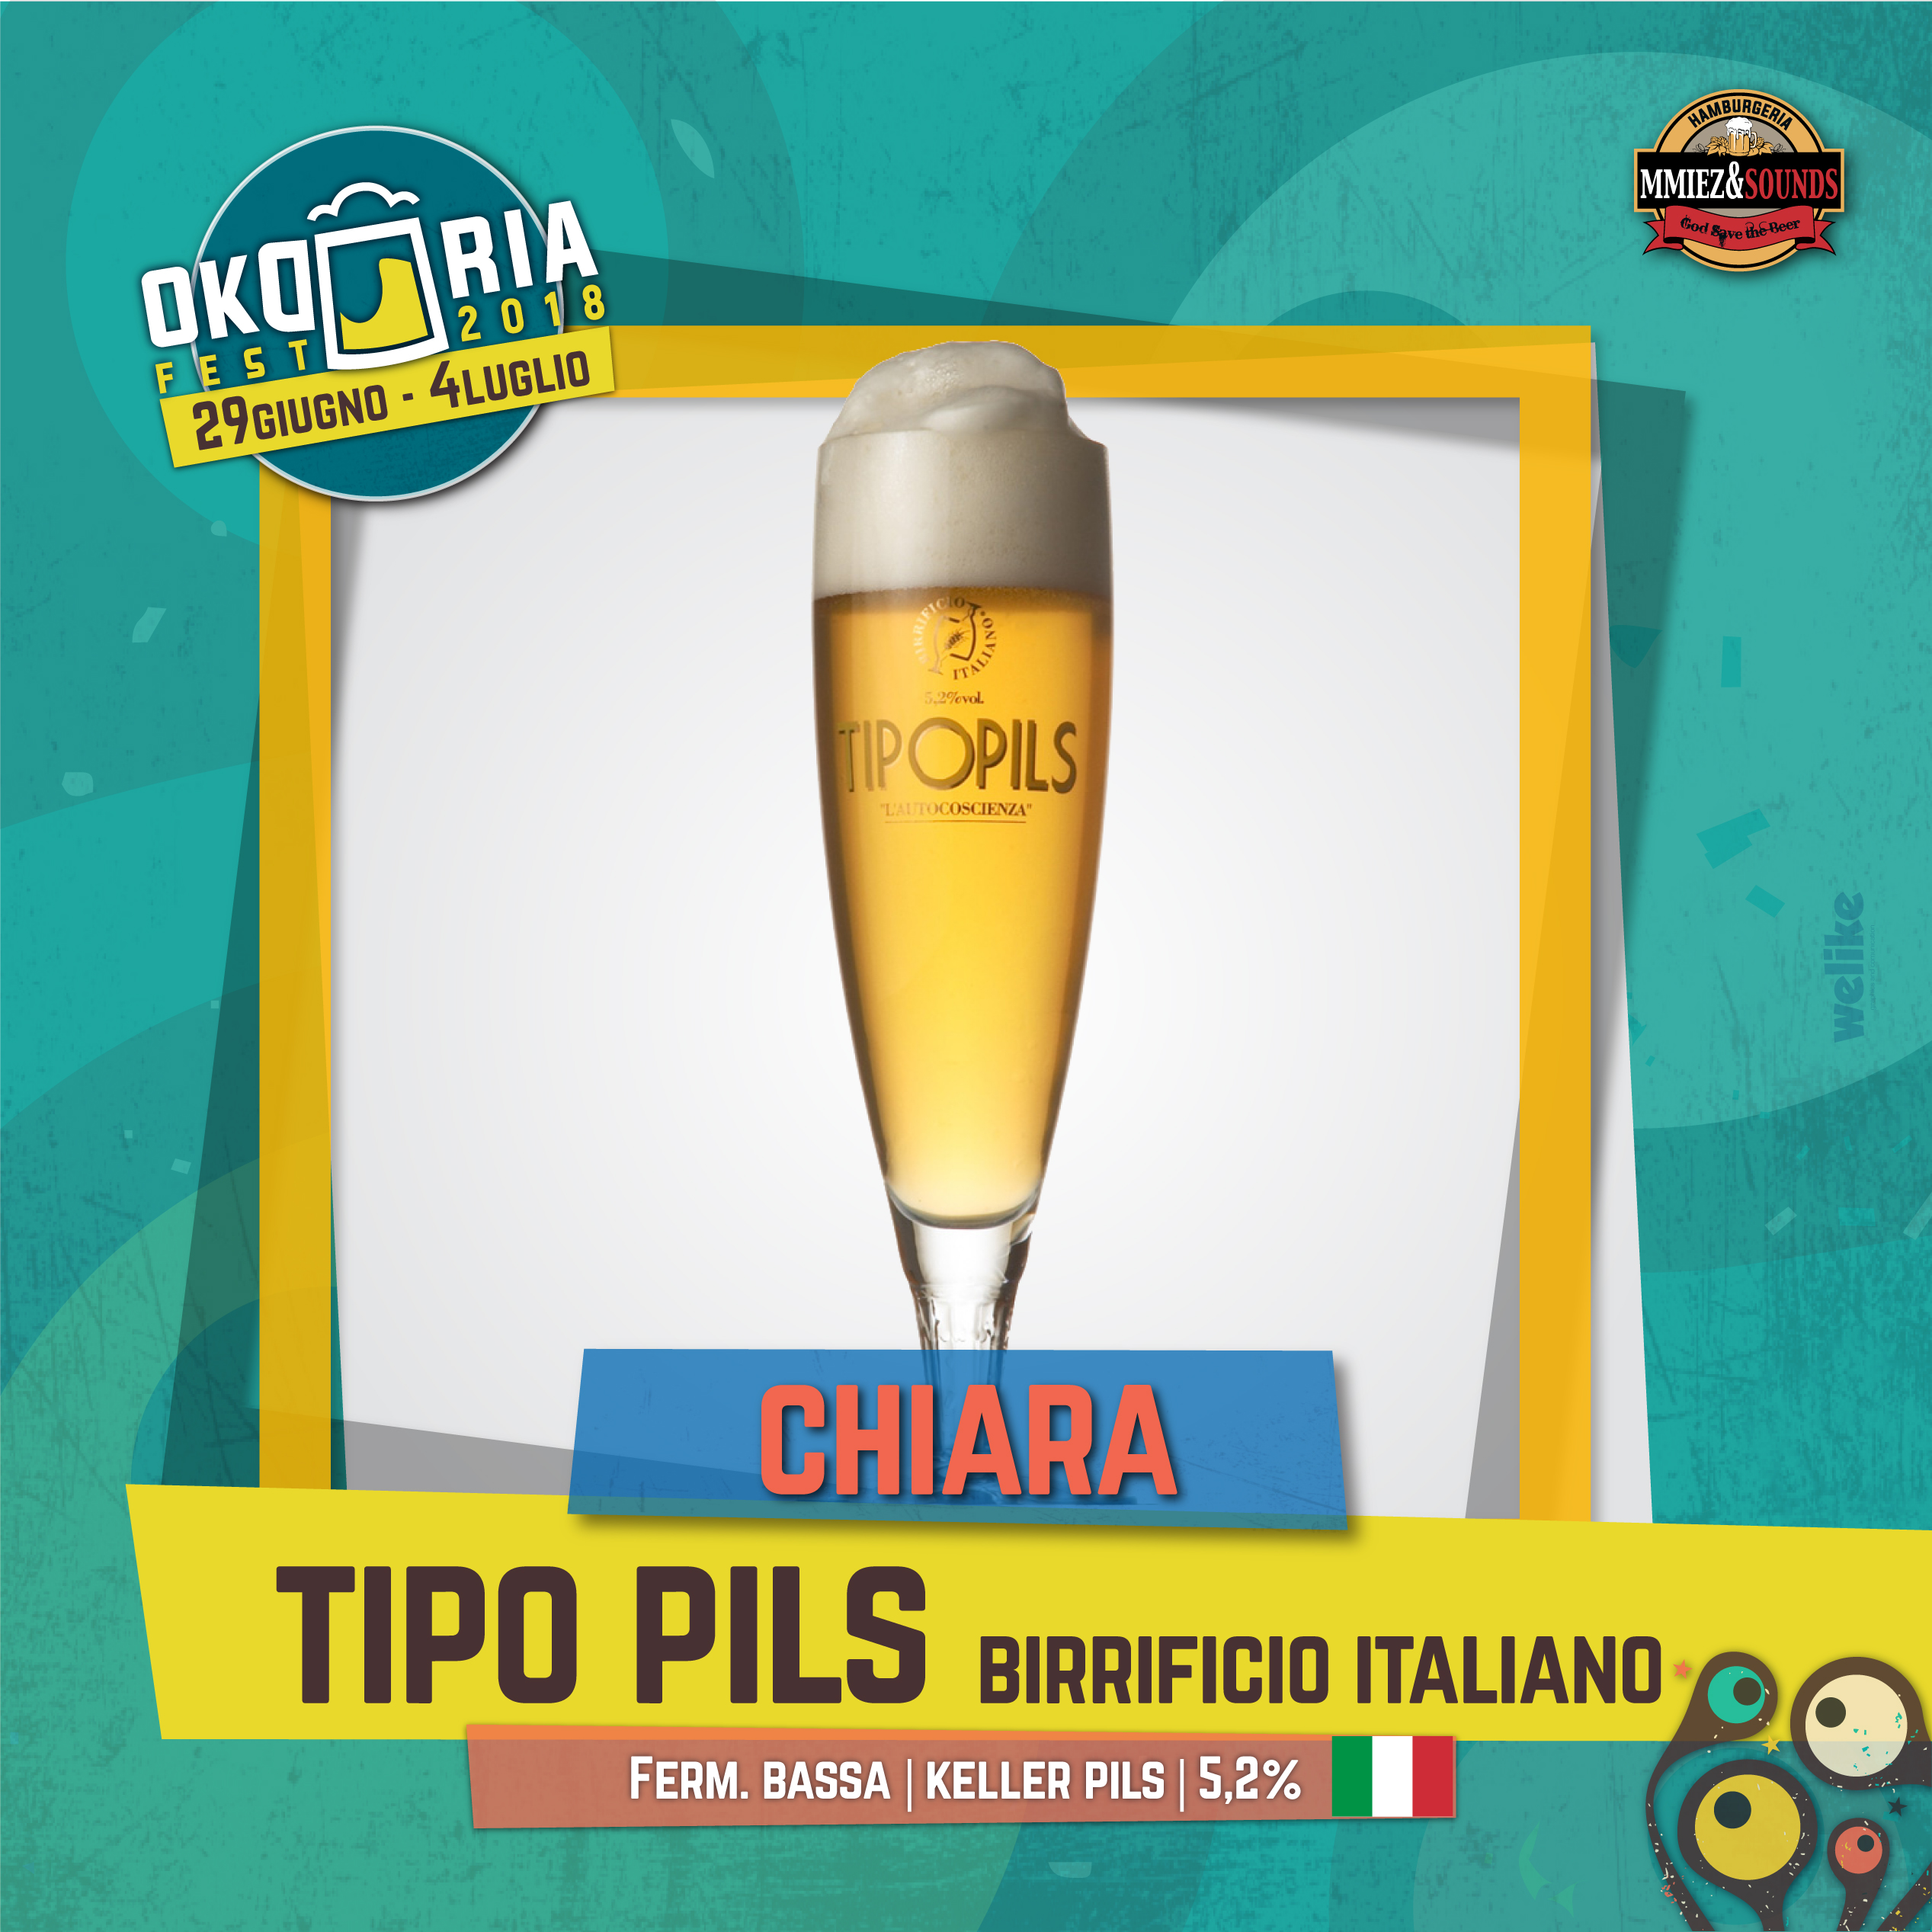 Birrificio Italiano Tipo pils